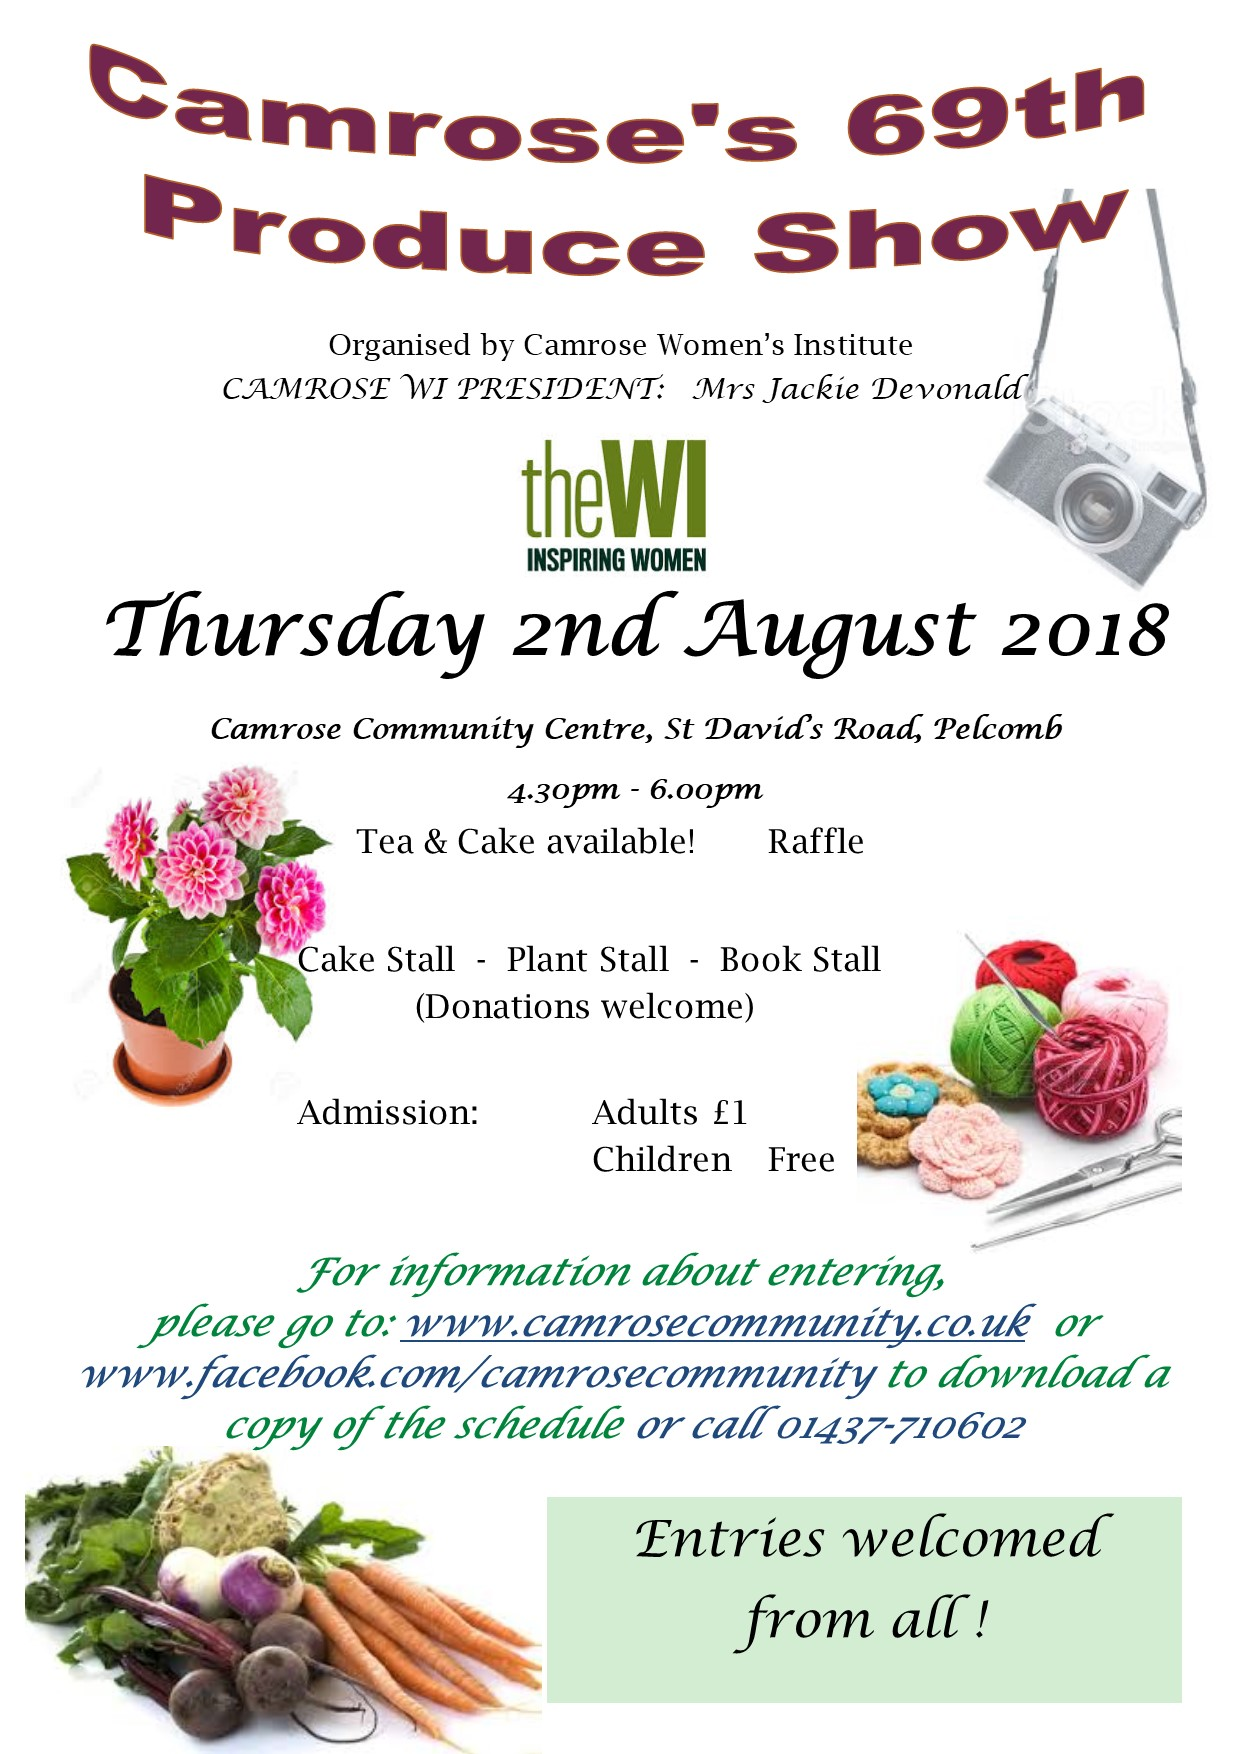 Thursday 2nd August - Camrose Produce Show